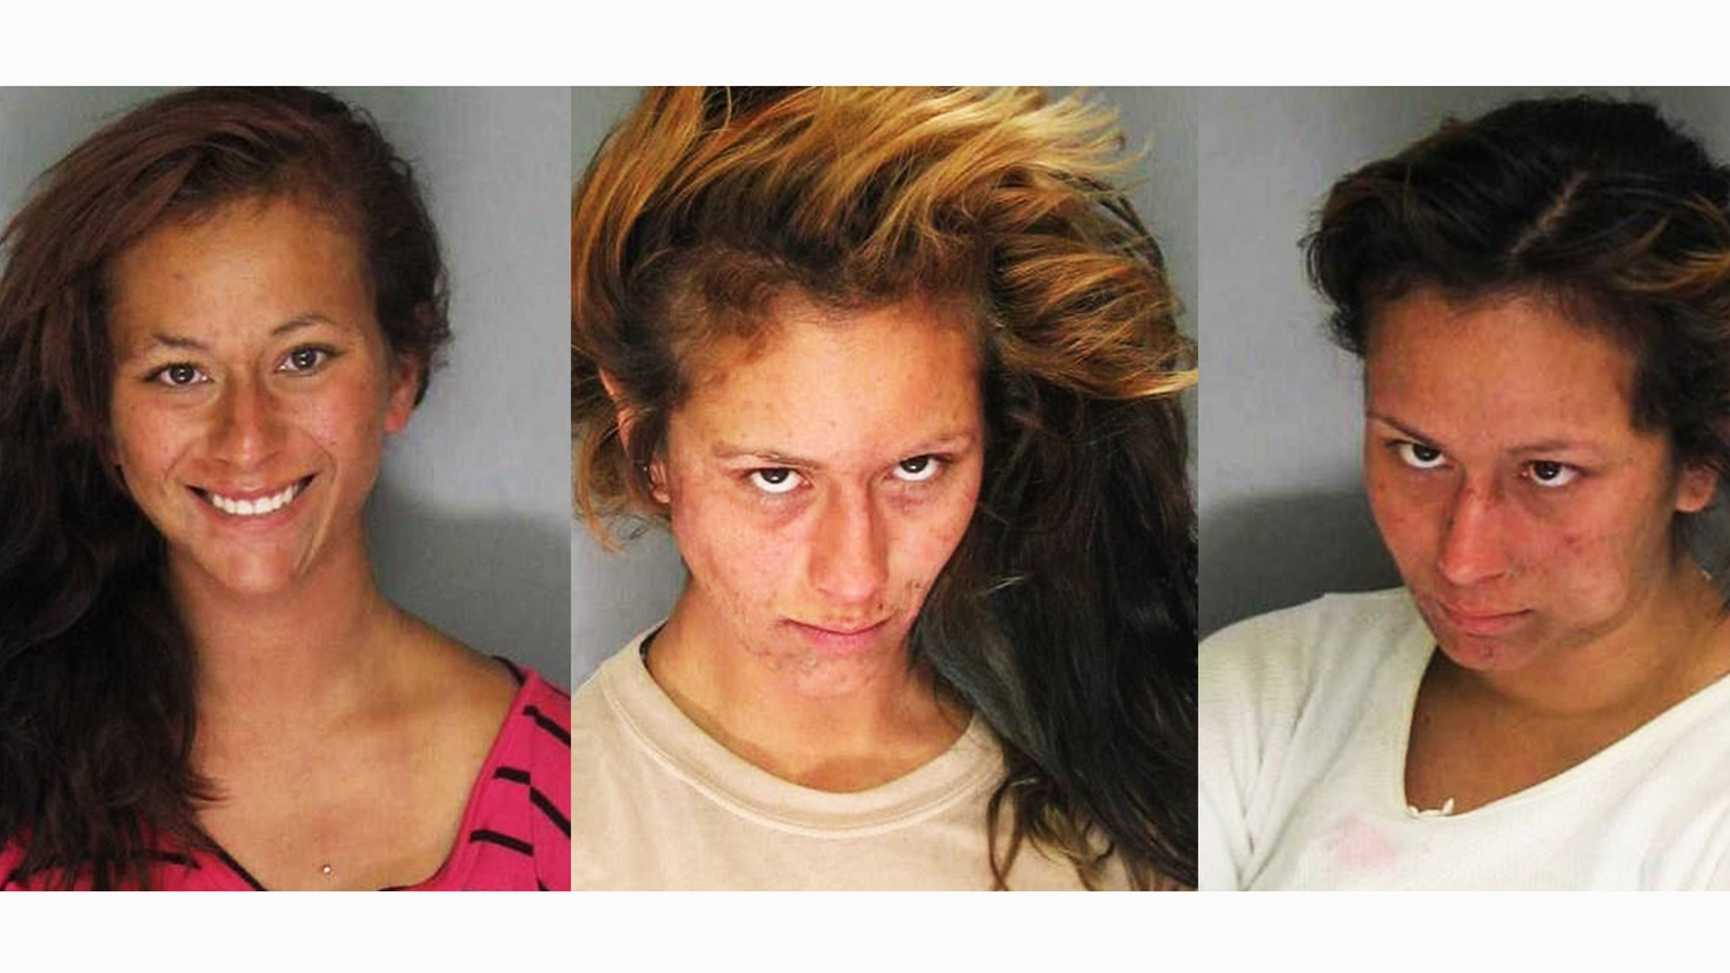 Fidela Curiel in August 2013, left, Nov 2013, middle, and March 2014, right.